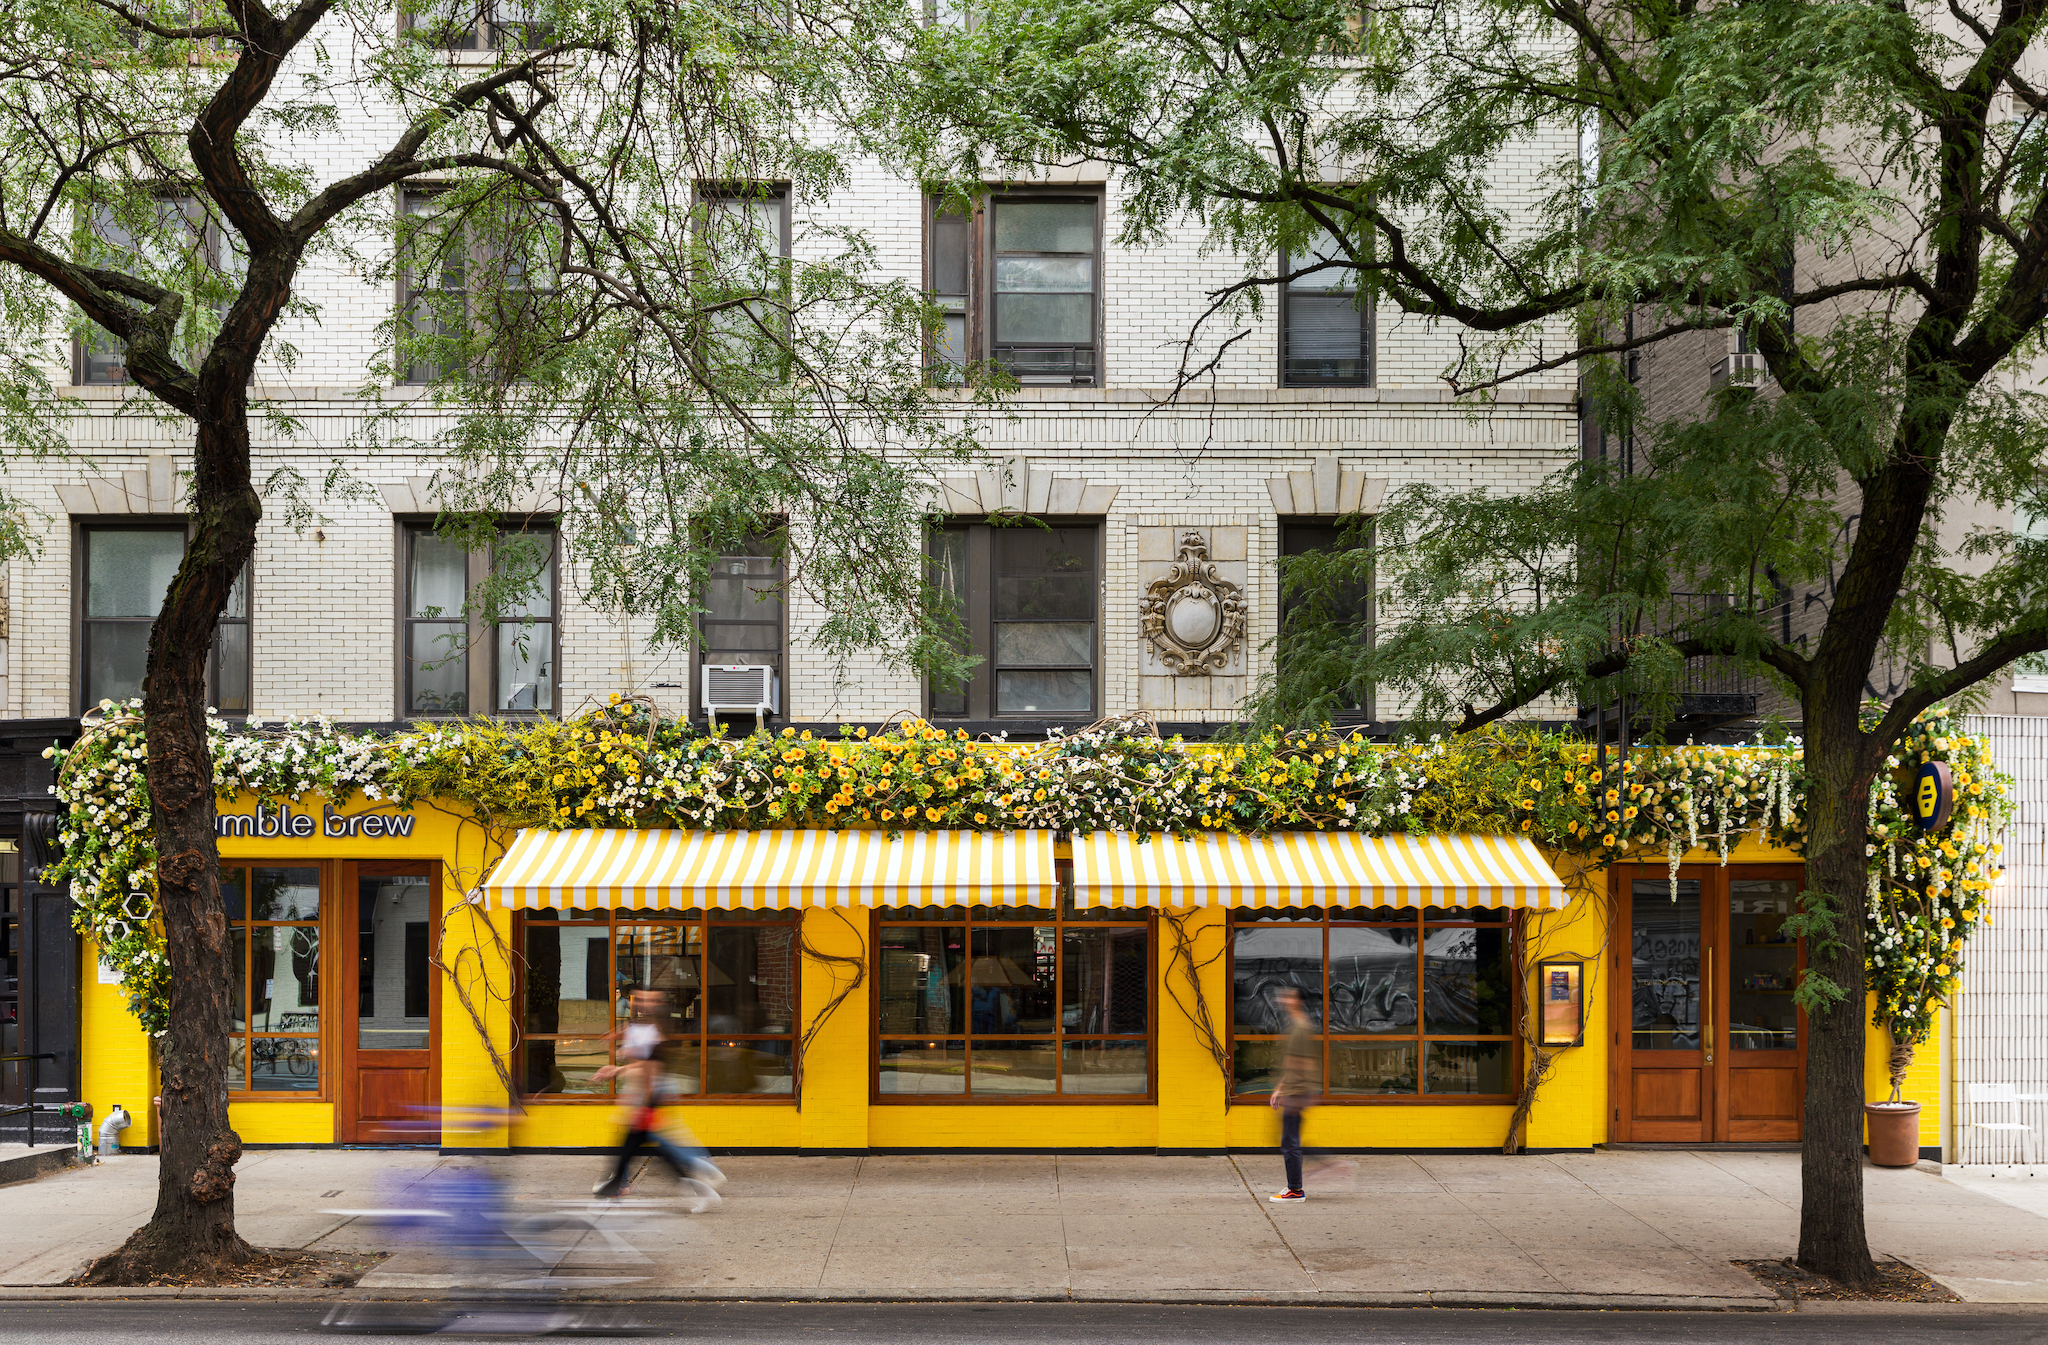 A sidewalk view of a restaurant with a yellow facade.